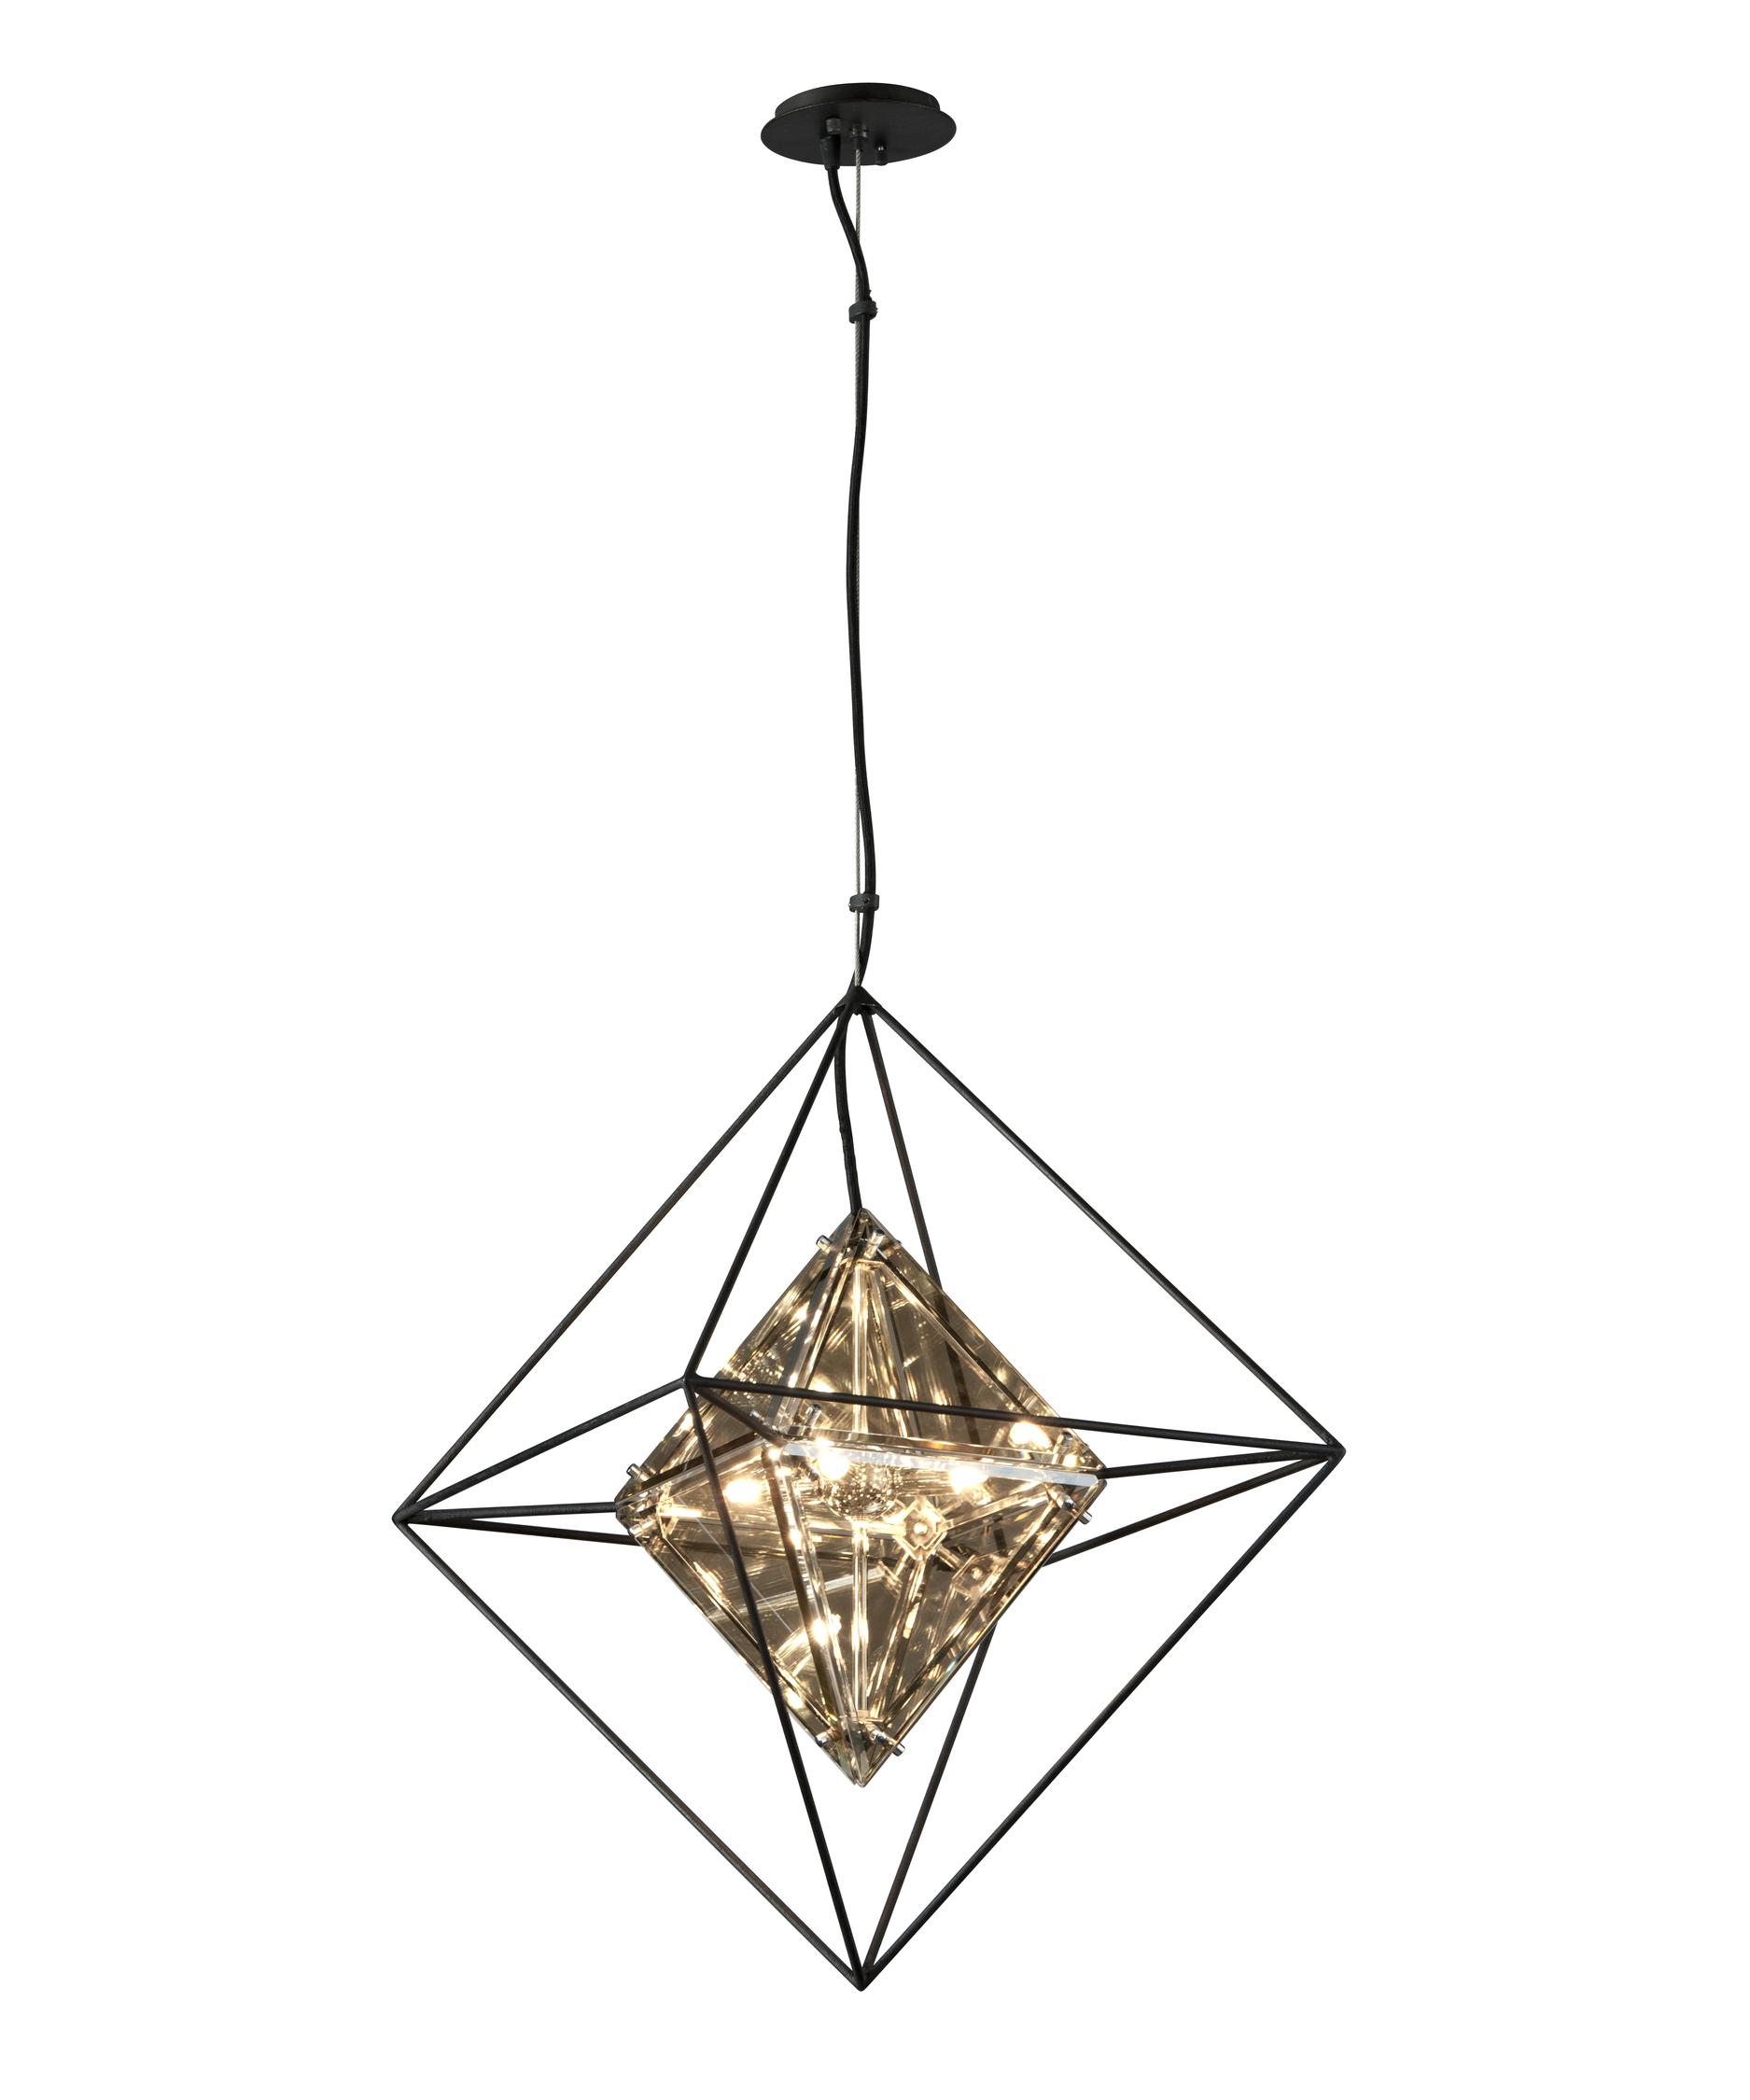 Troy Lighting F5325 Epic 18 Inch Wide 4 Light Large Pendant ...